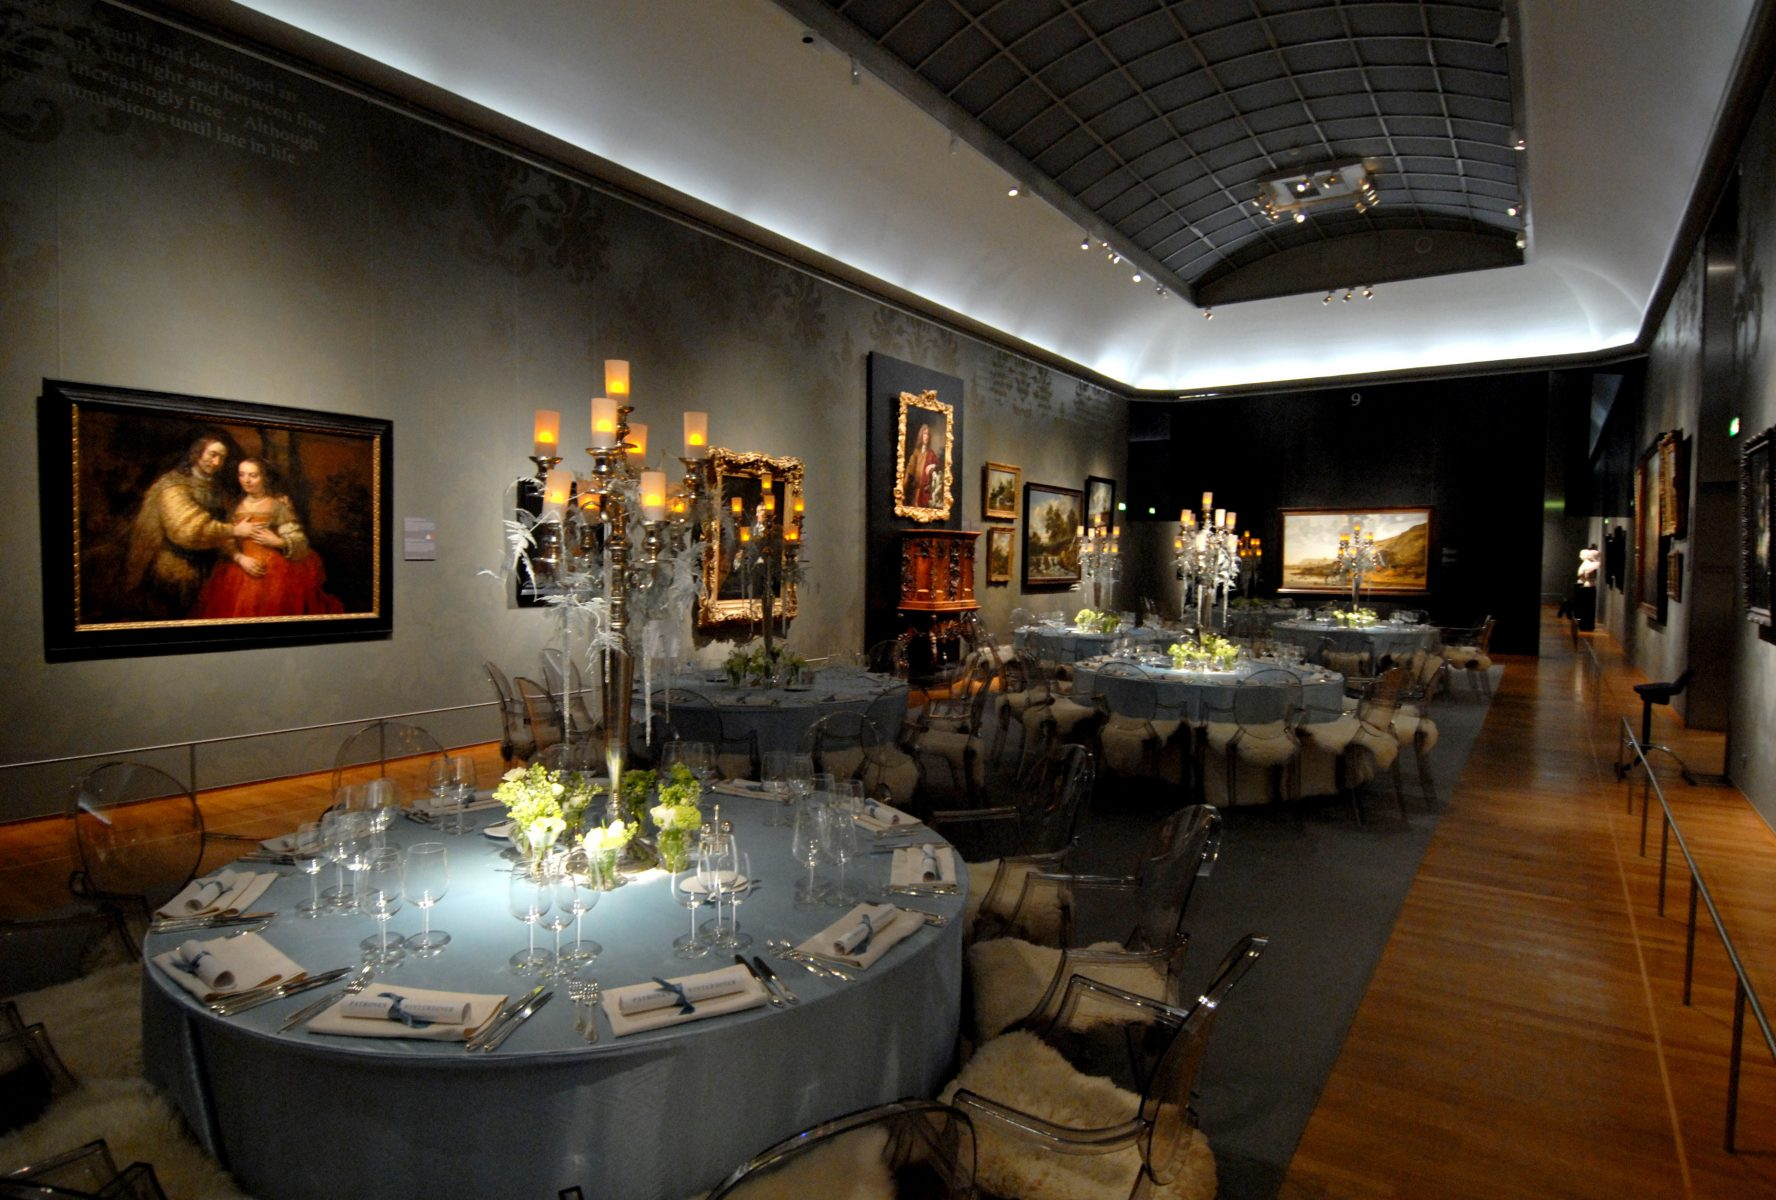 Dinner im Museum Bas de Boer Eventstyling - Dinner